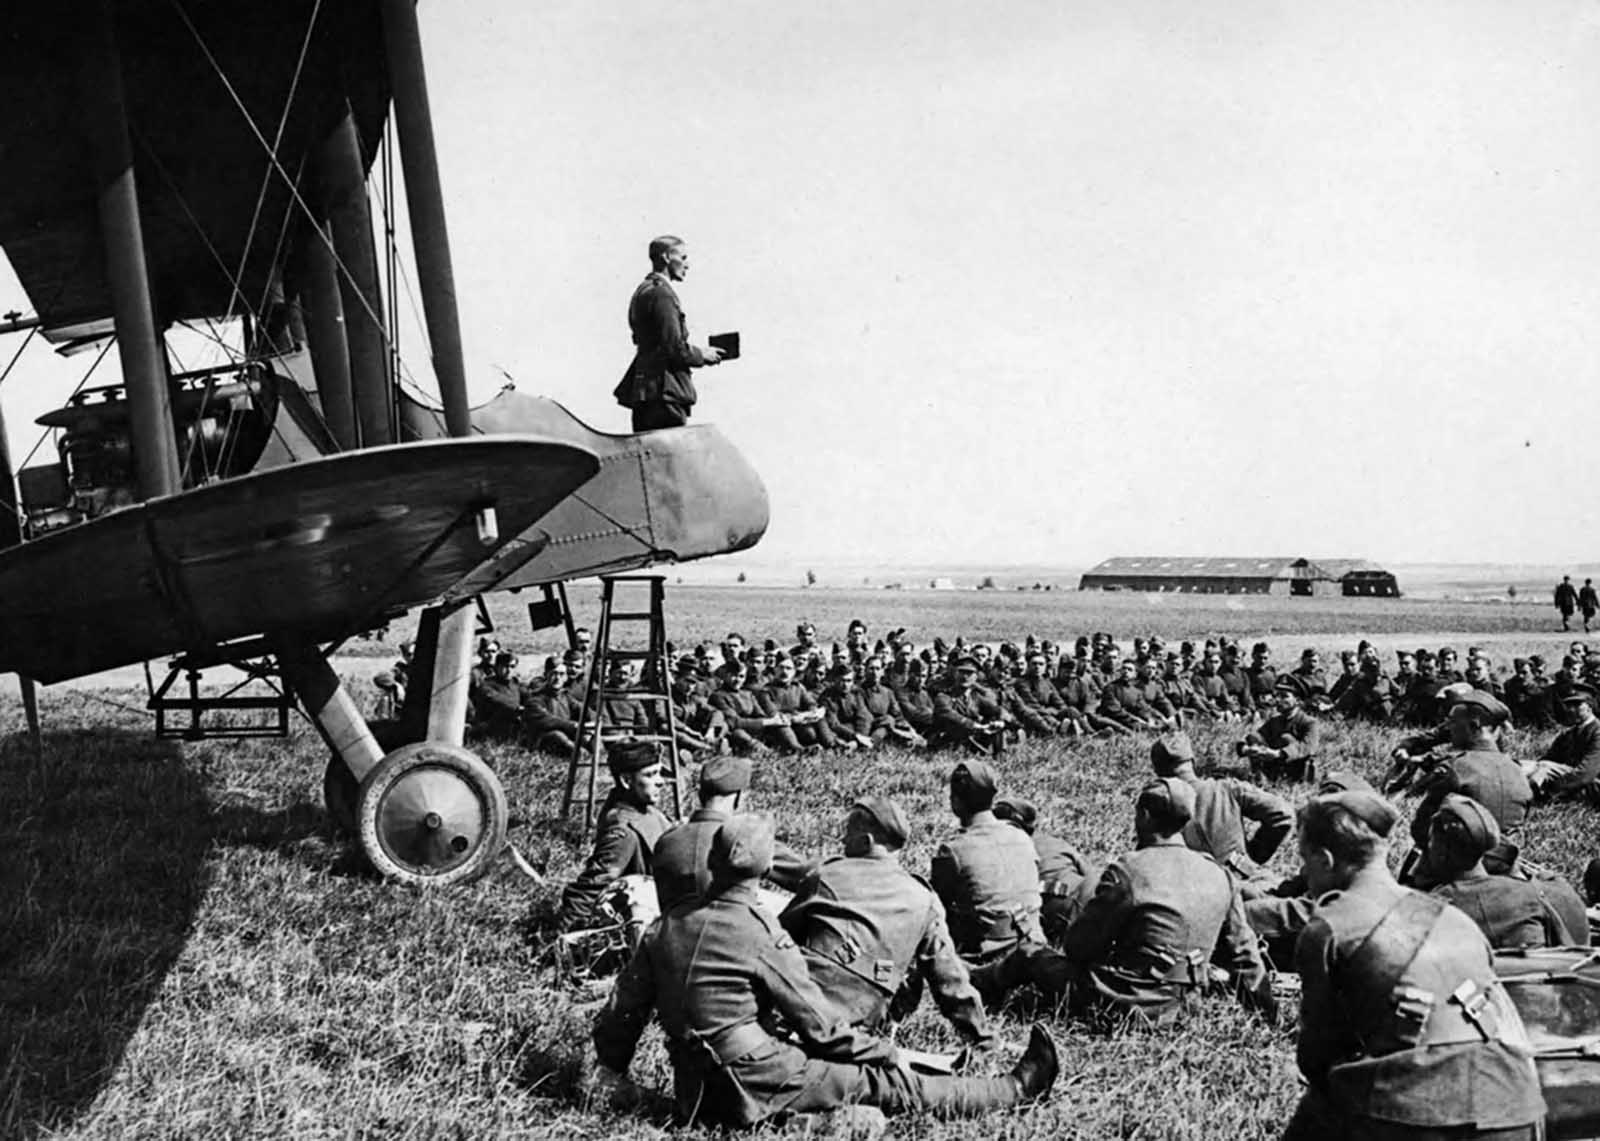 A Sunday morning service in an aerodrome in France. The Chaplain conducting the service from an aeroplane.